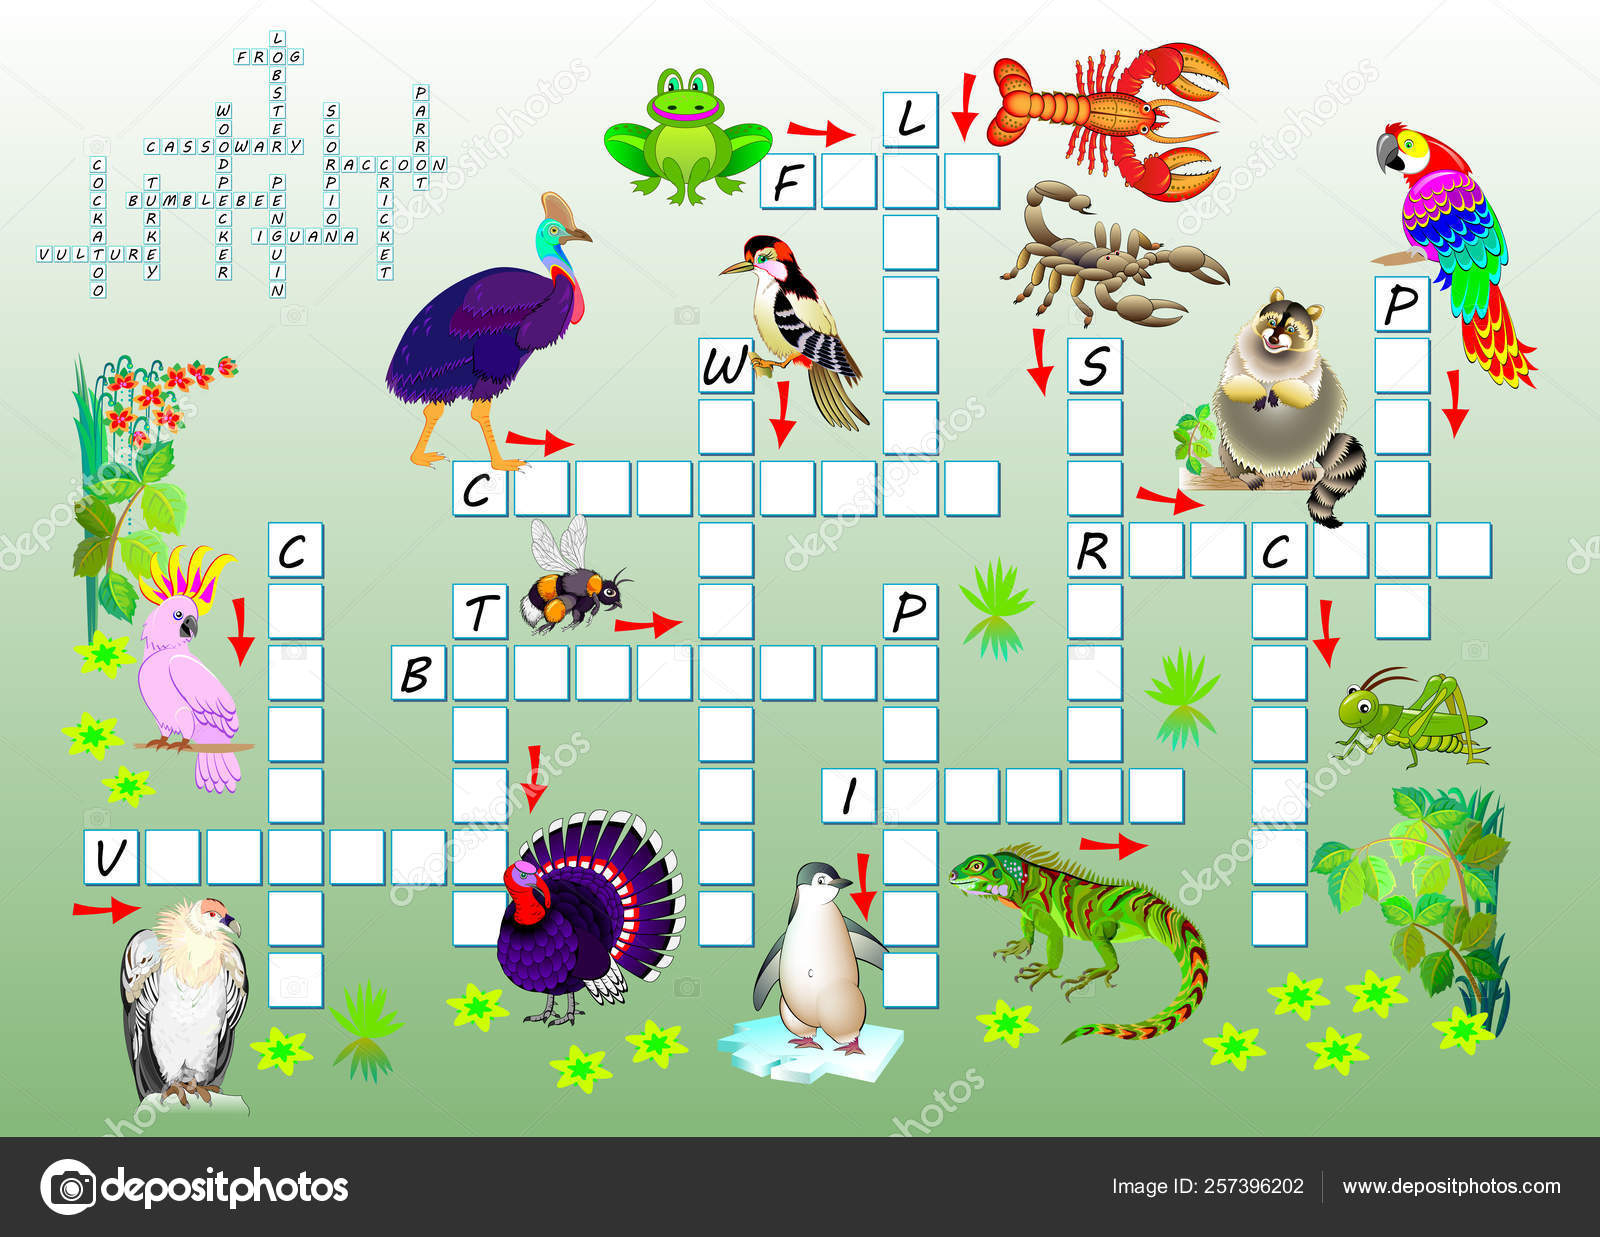 Crossword Puzzle Game Funny Animals Educational Page Children Study - Printable Cartoon Crossword Puzzles